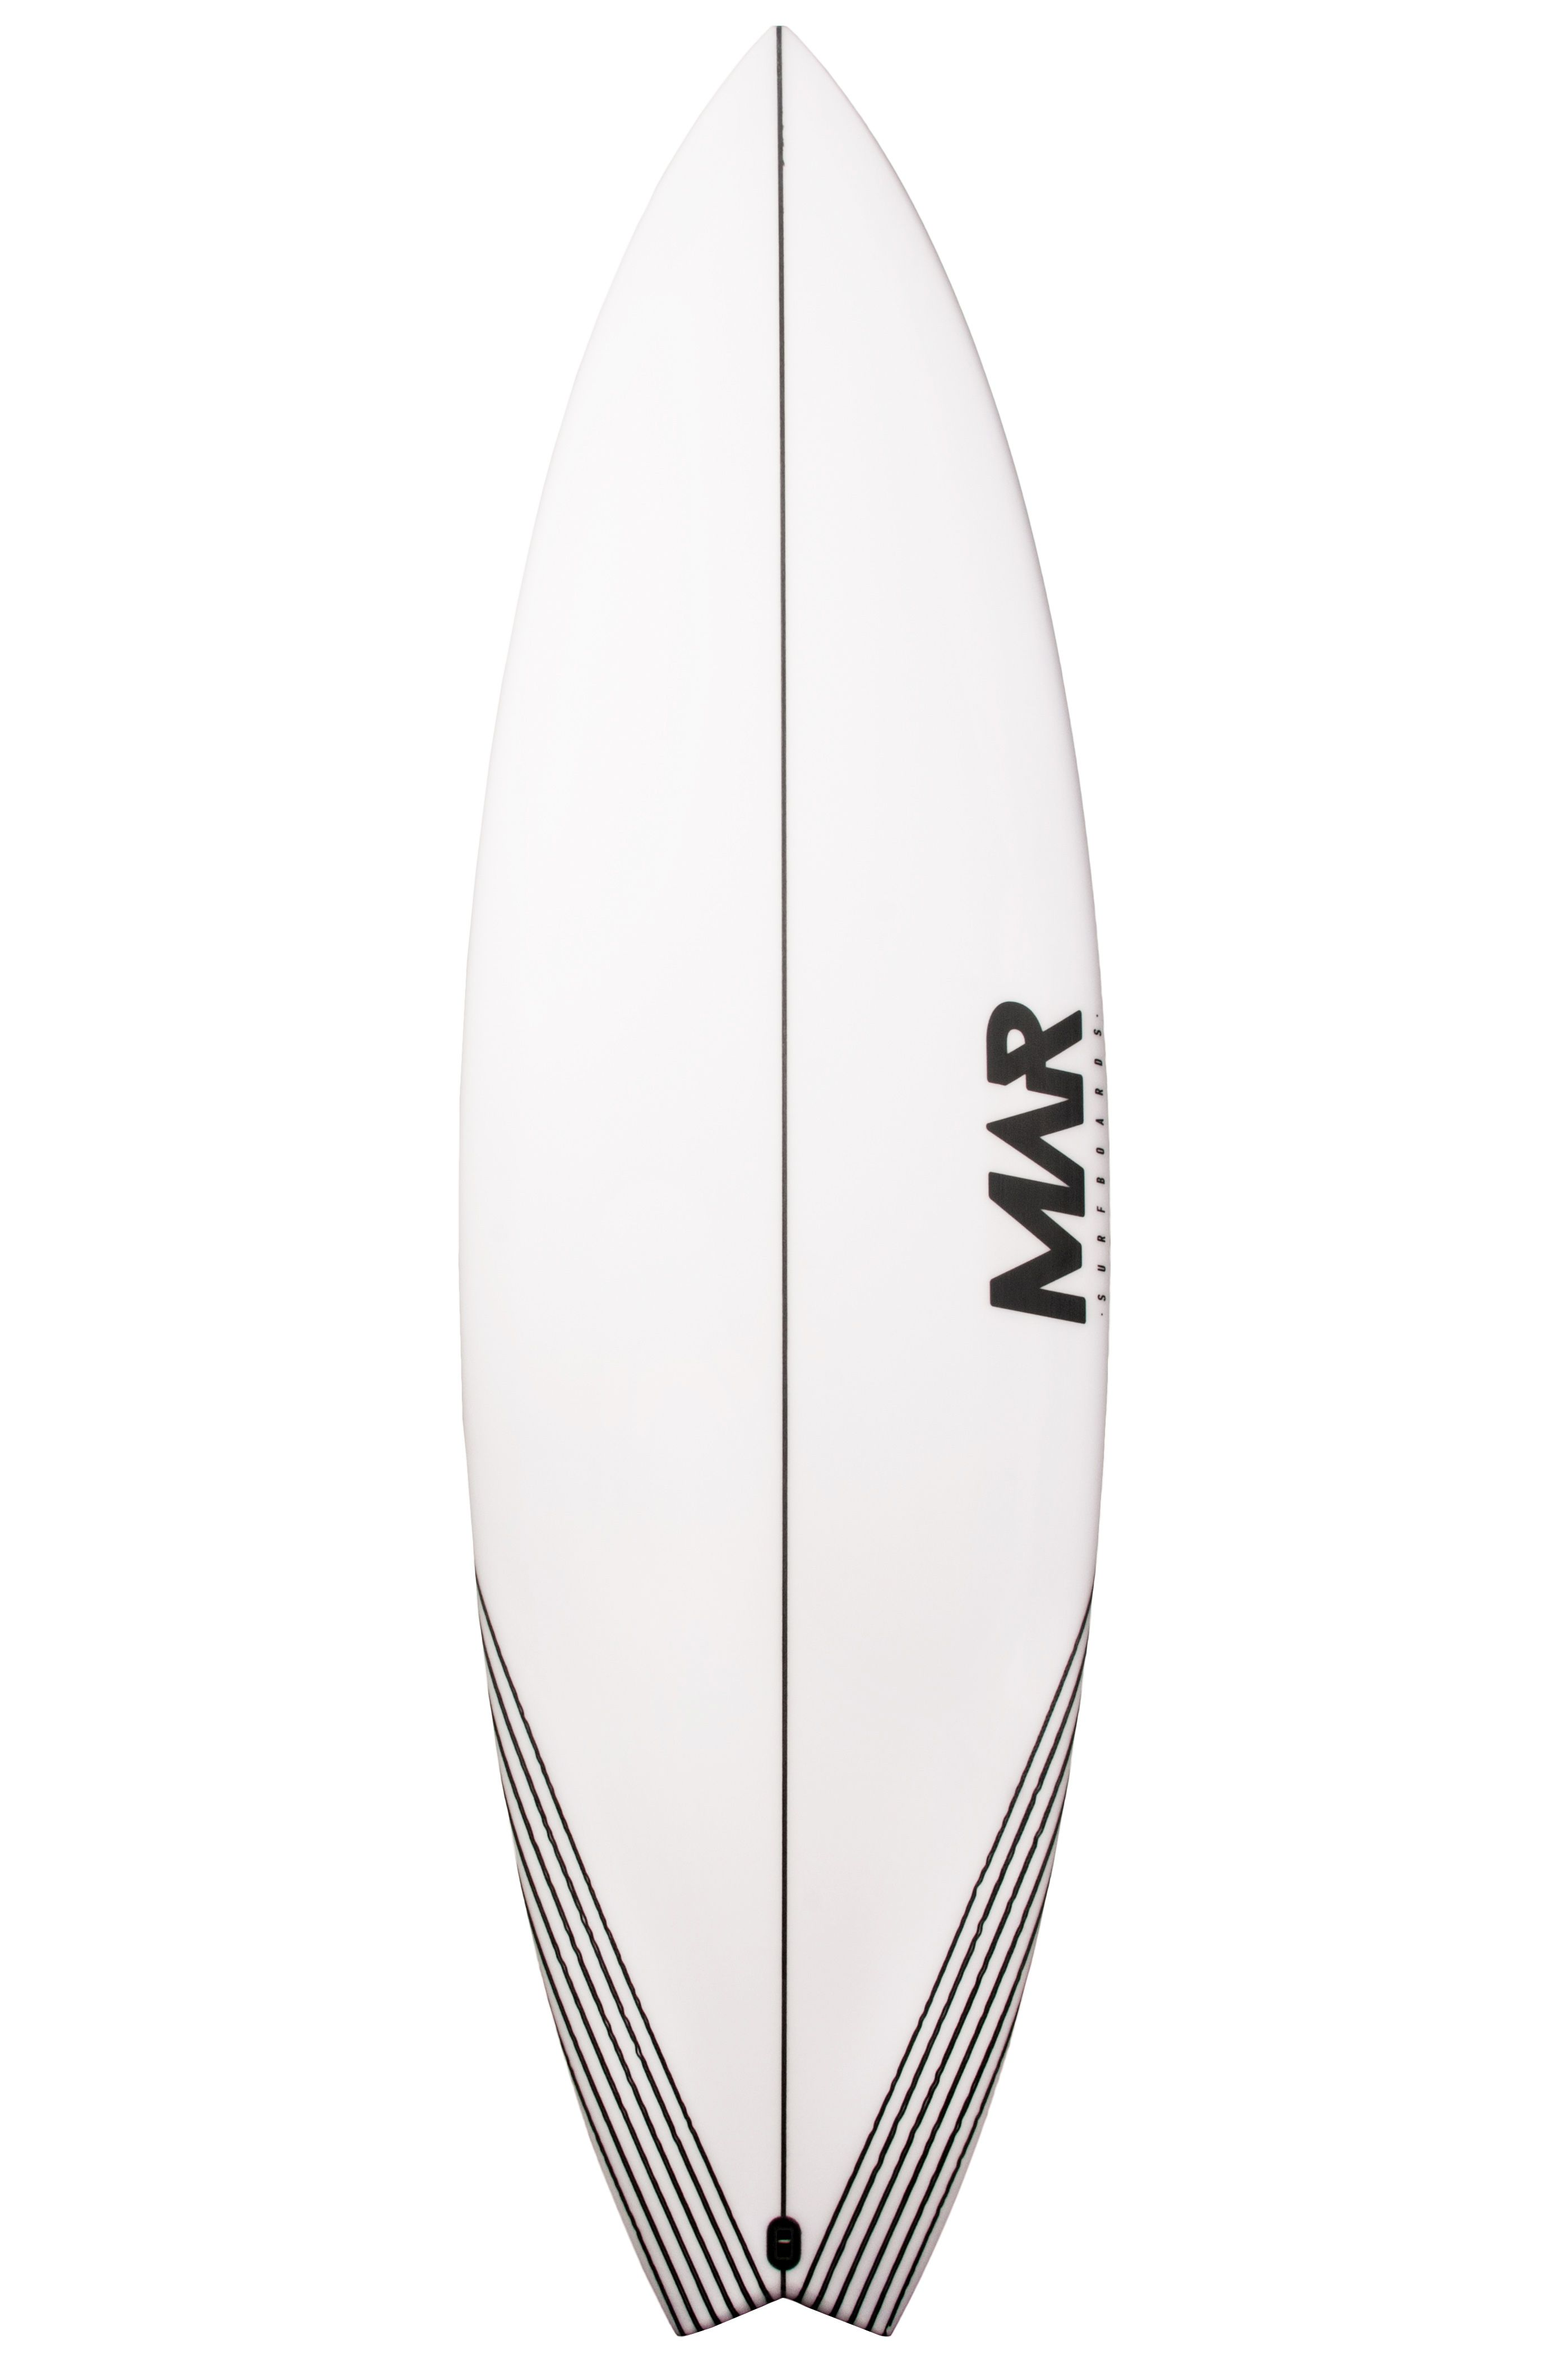 Prancha Surf Mar 6'0 PARROT PU Swallow Tail - White FCS II 6ft0